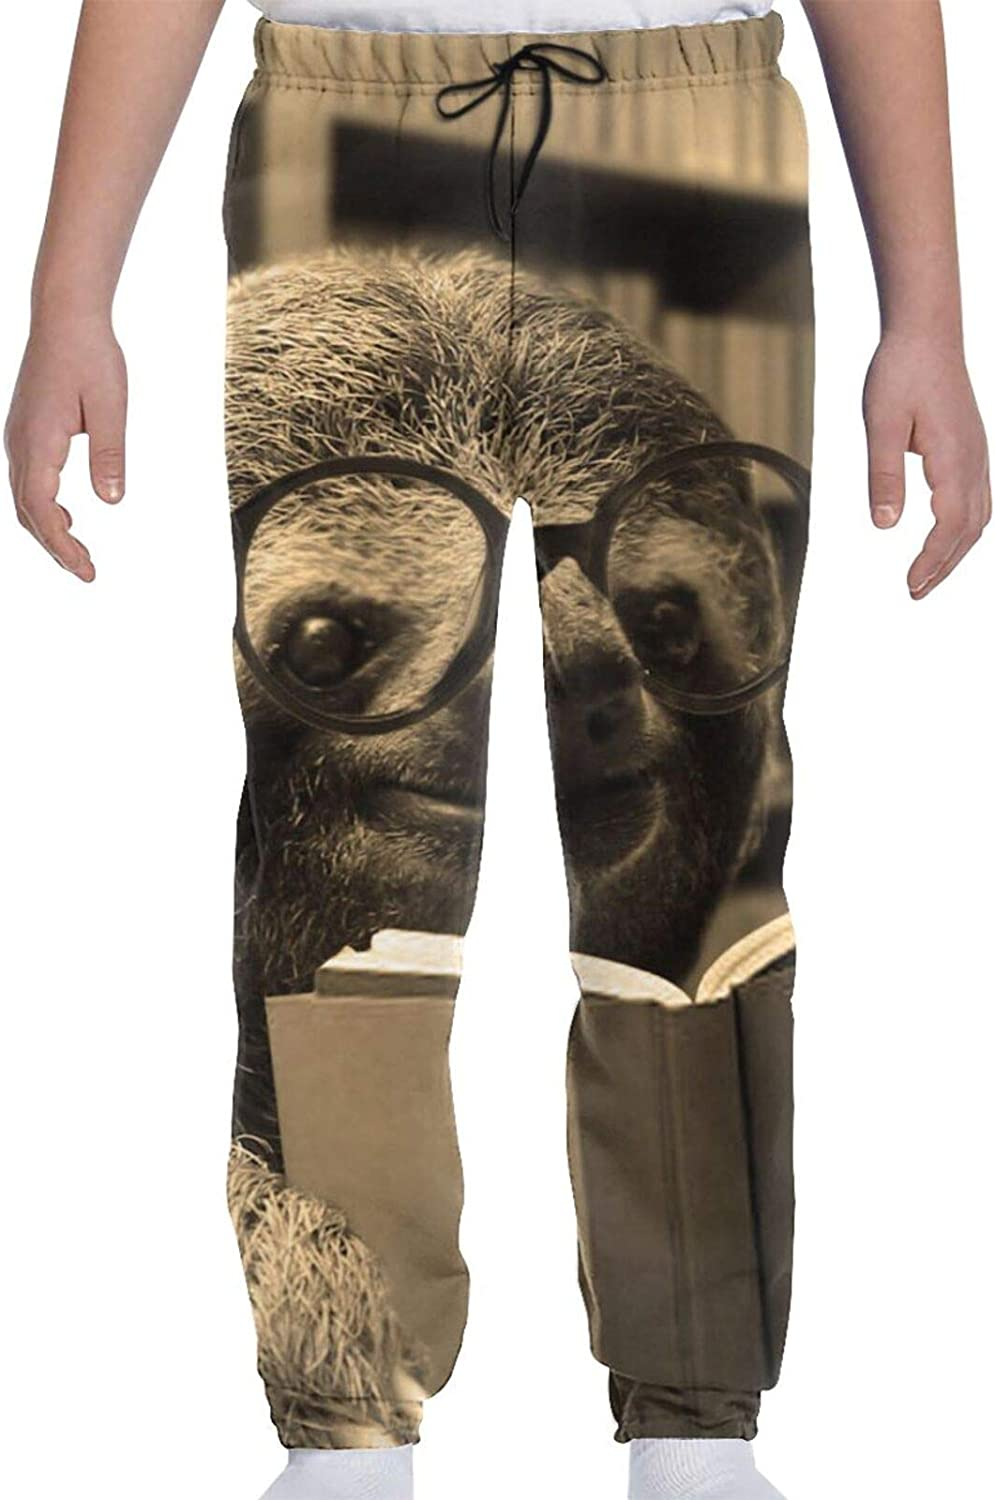 Oomato Funny Sloth Youth Sweatpants Trousers store Boy 2021new shipping free Print 3D Teens